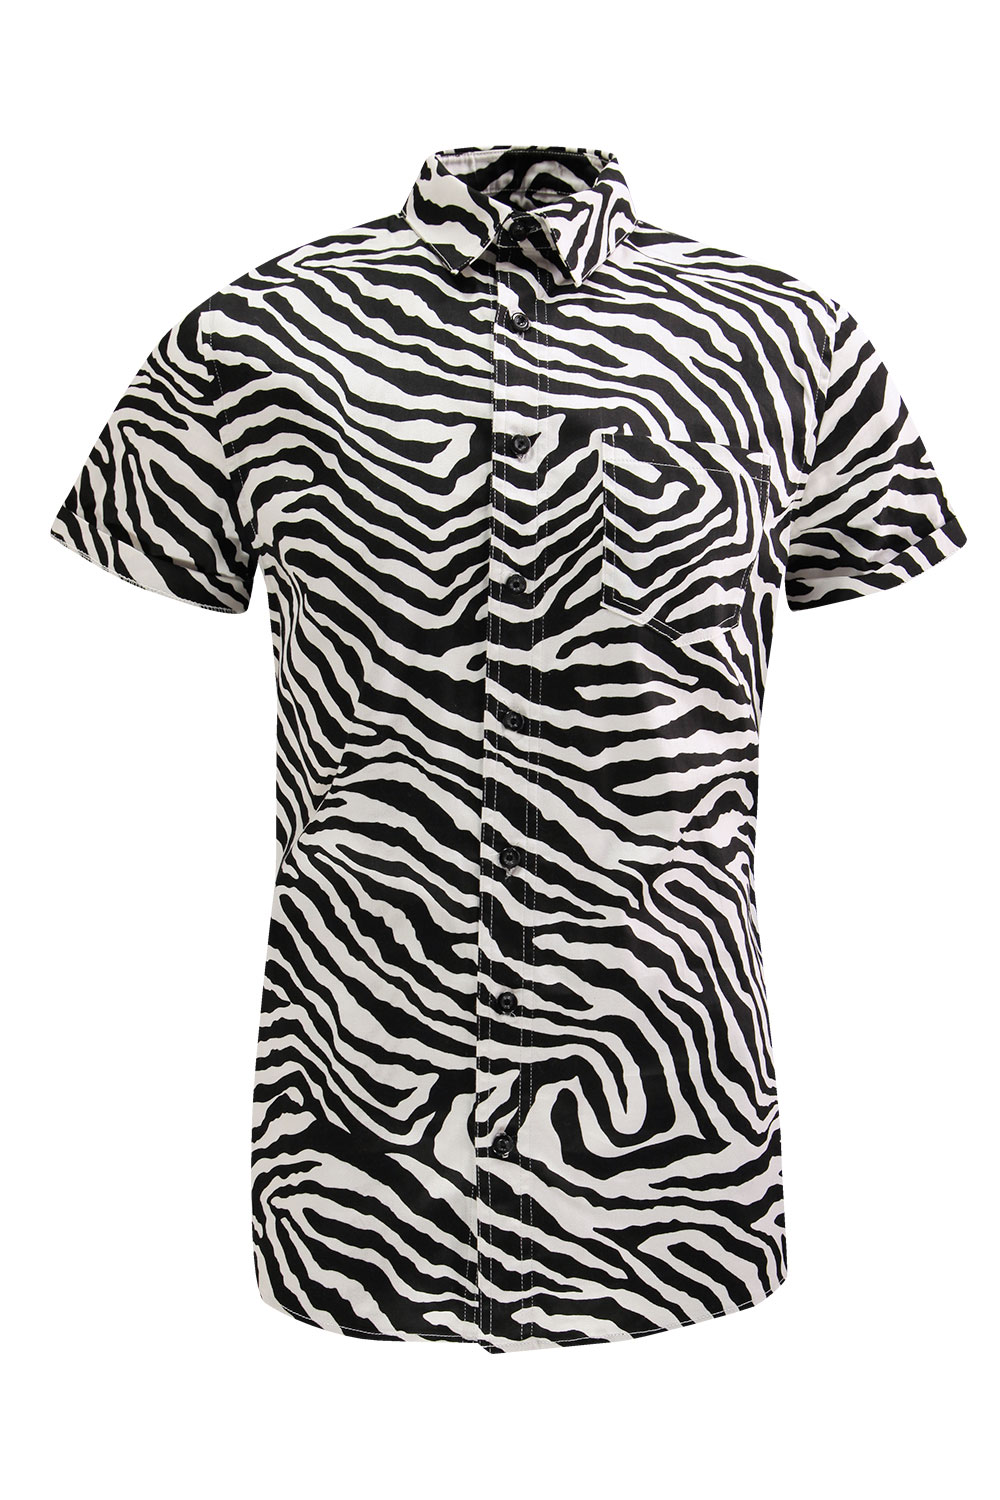 Find high quality Zebra Print Men's T-Shirts at CafePress. Shop a large selection of custom t-shirts, longsleeves, sweatshirts and more. TOP. Get Exclusive Offers: Thanks. We'll keep you posted! You're set for email updates from CafePress. Check your Inbox for exclusive savings and the latest scoop.